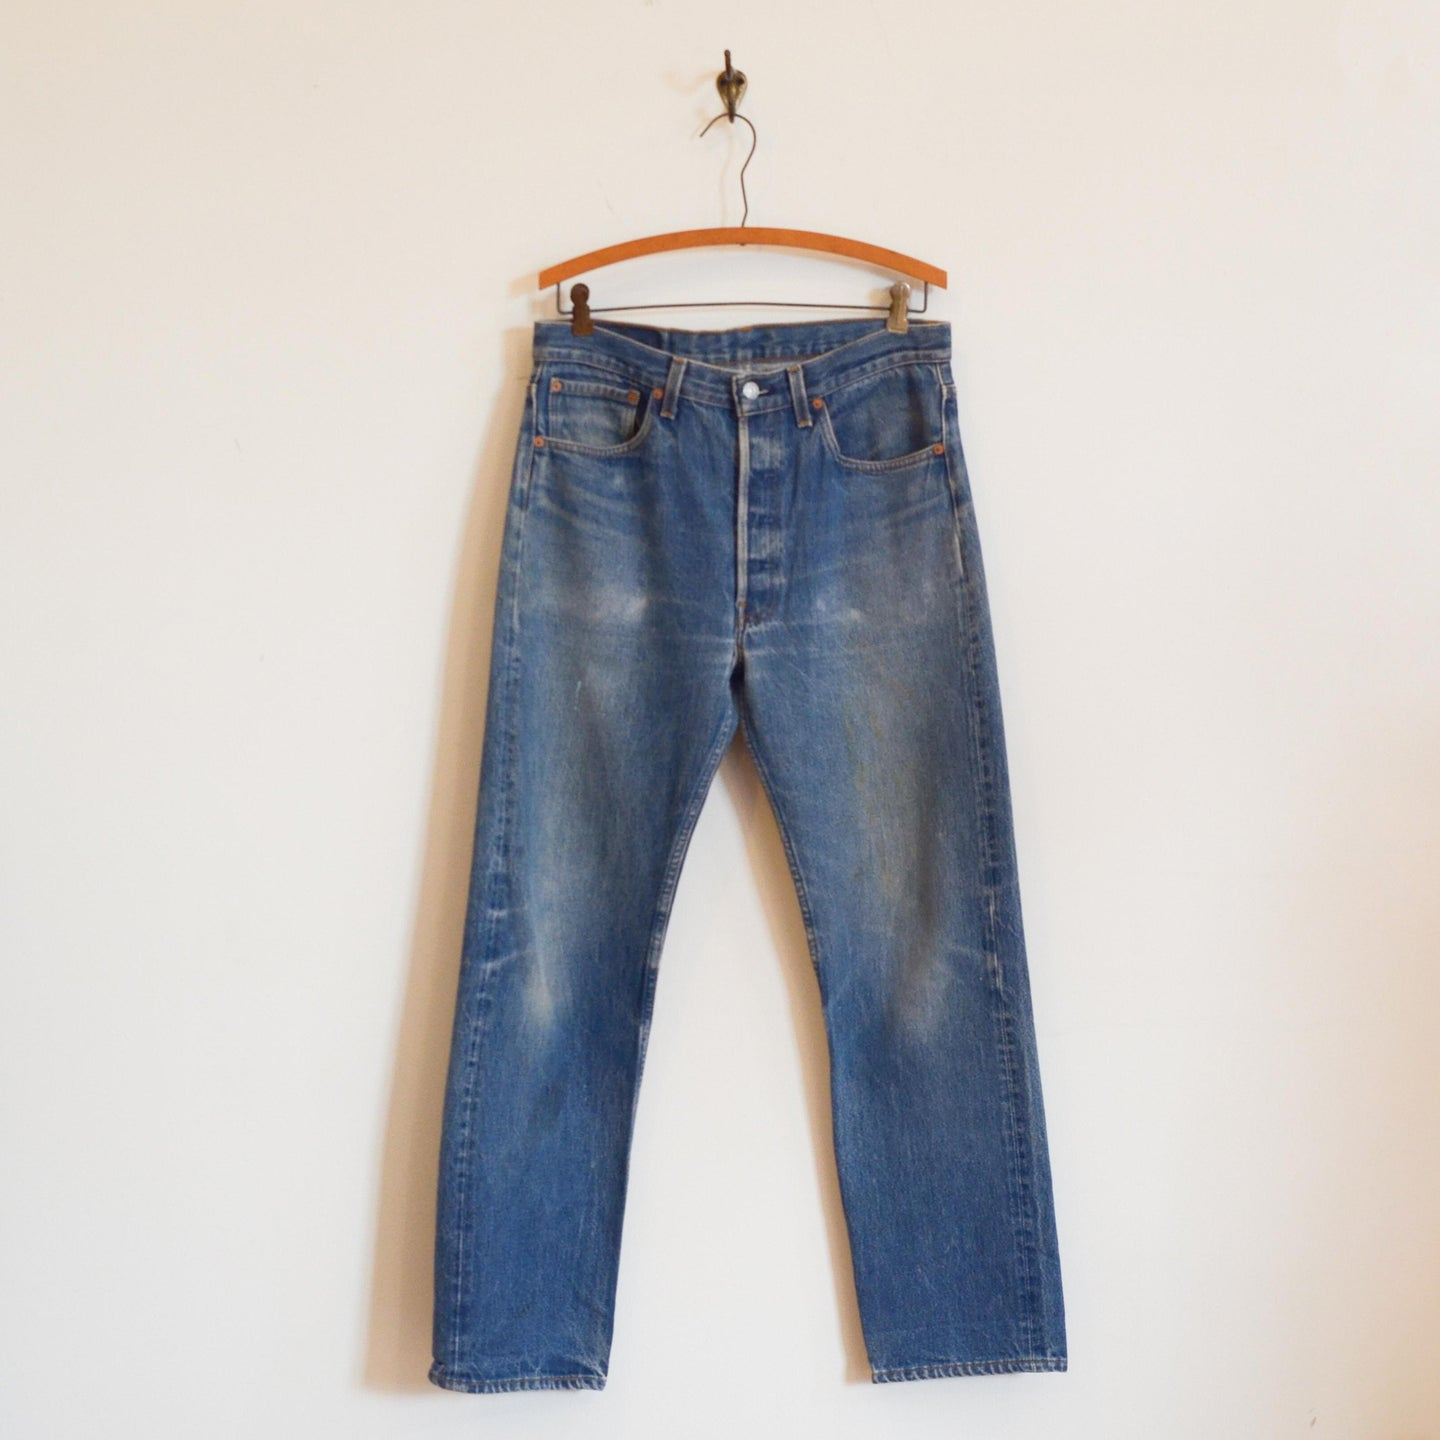 Levi Strauss & Co. - 501 Straight Denim Pants